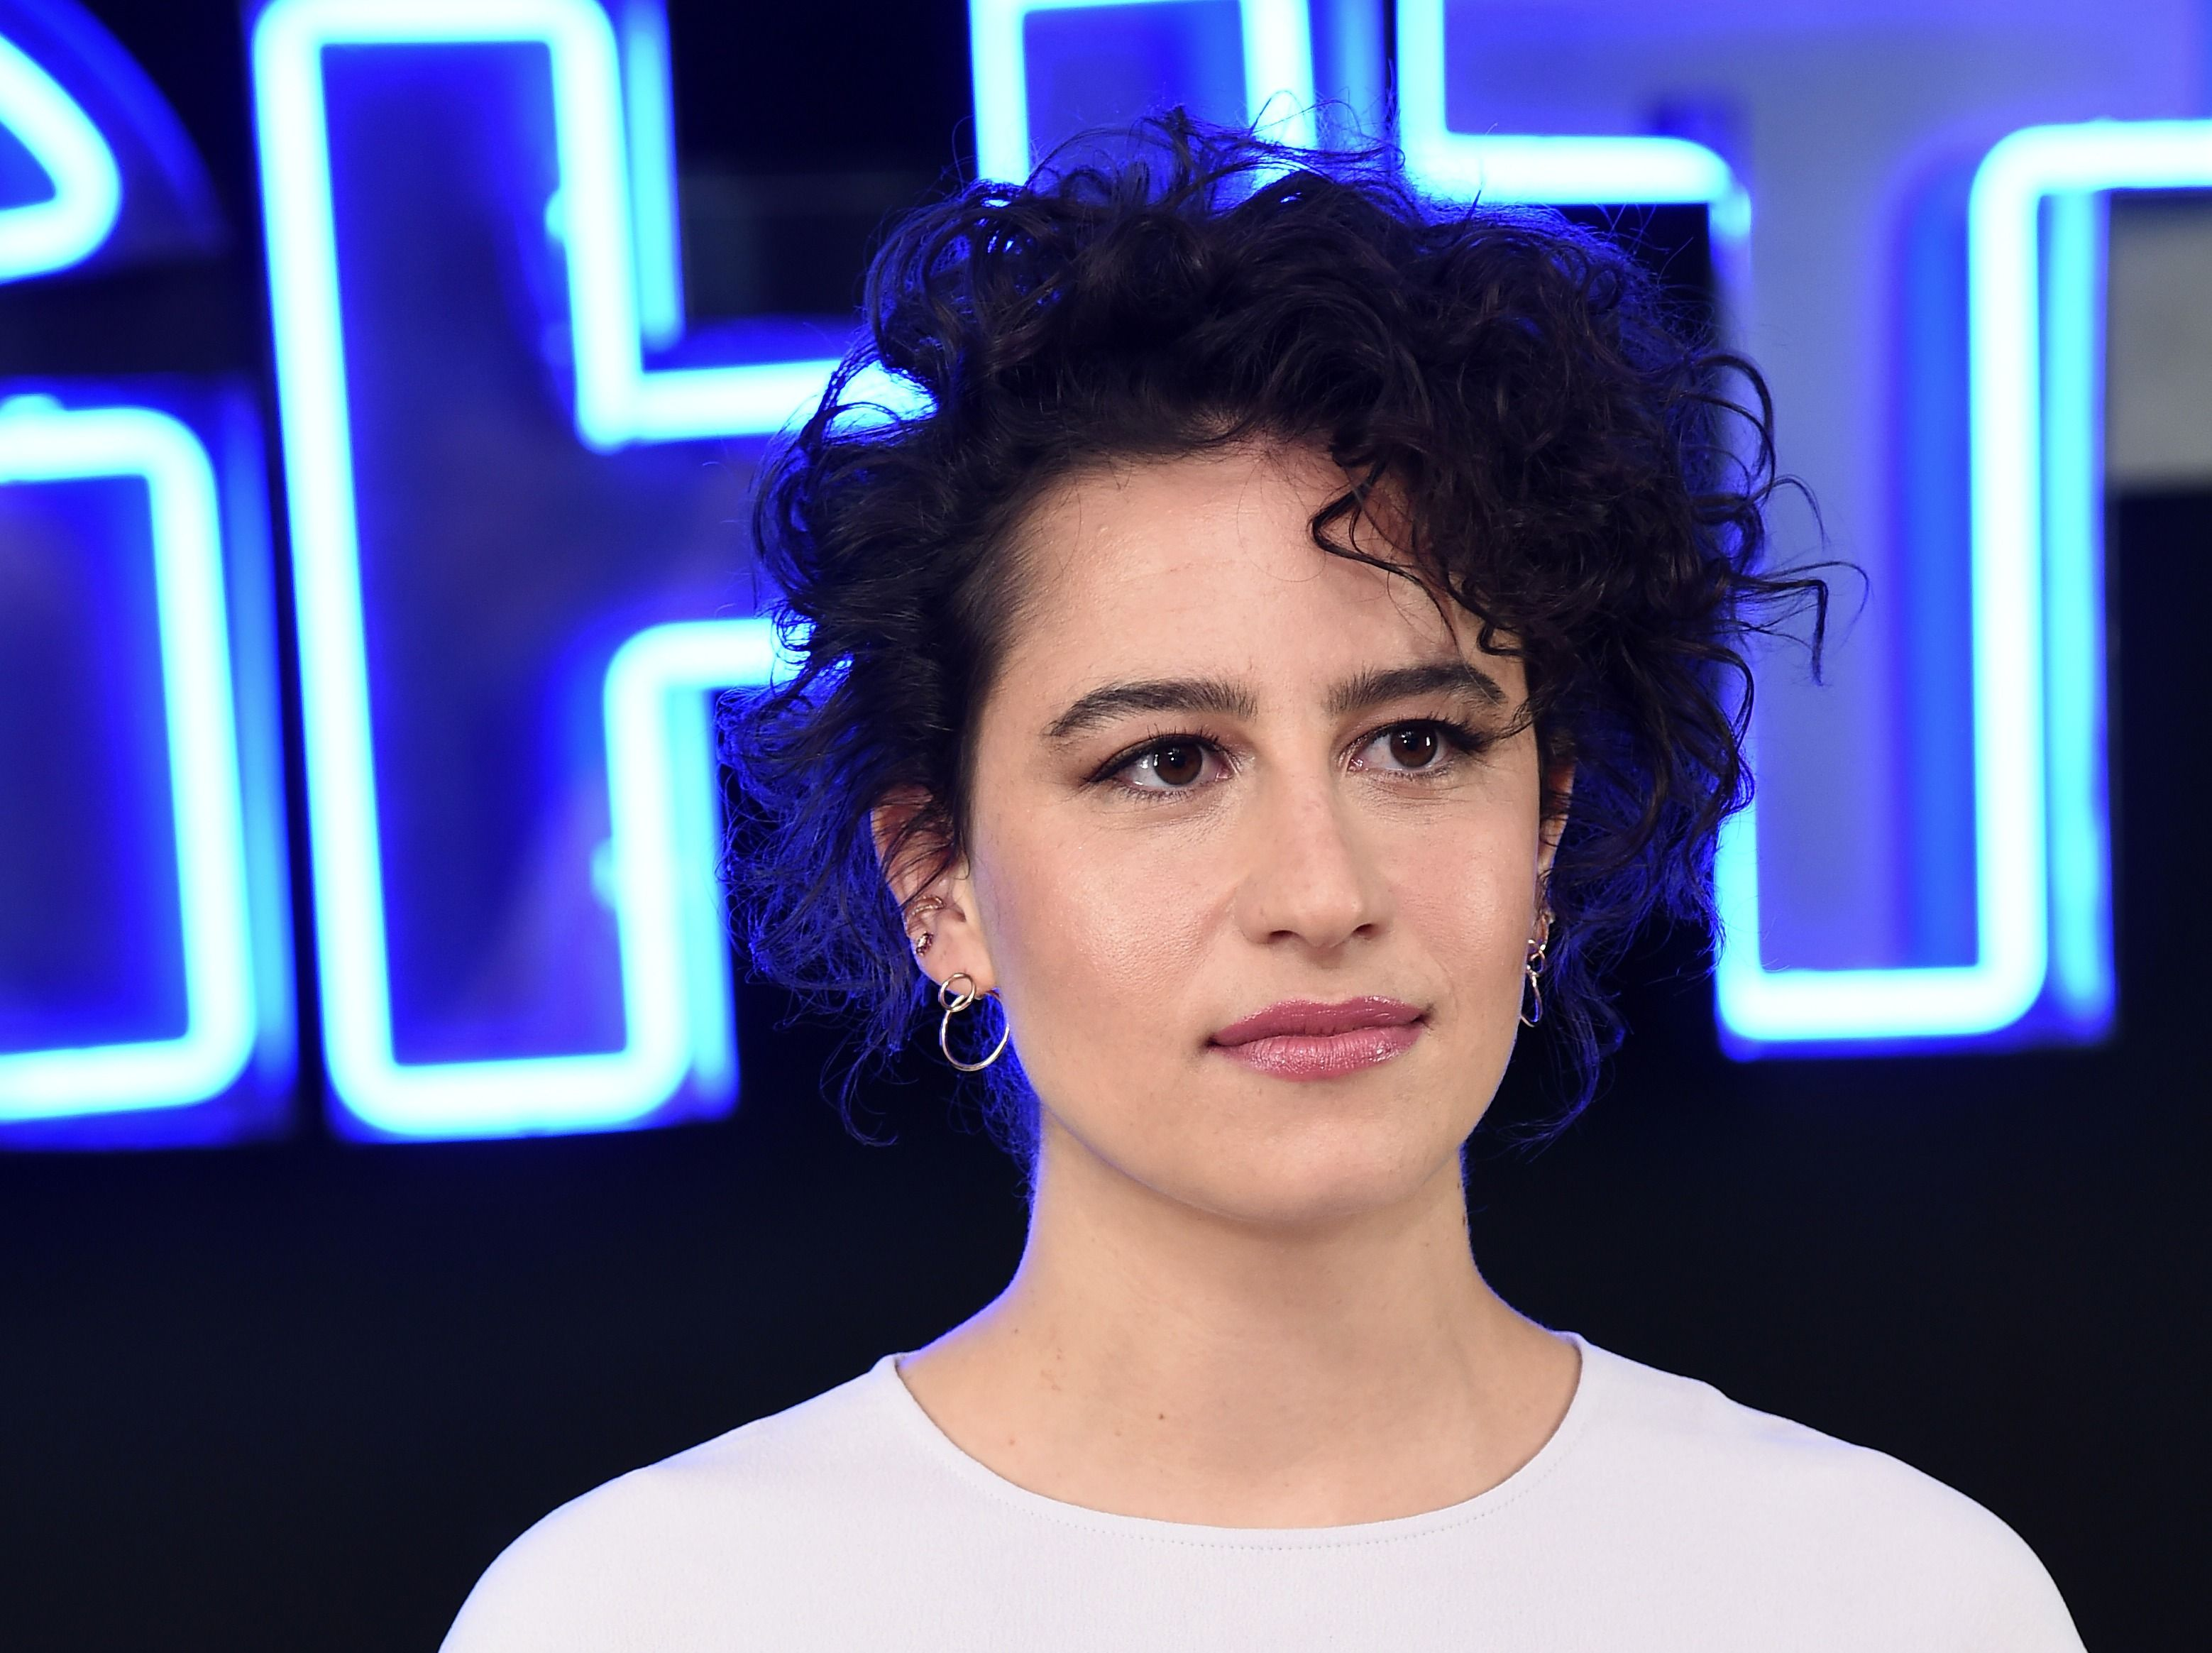 Broad City's Ilana Glazer fired staffers over sexual harassment